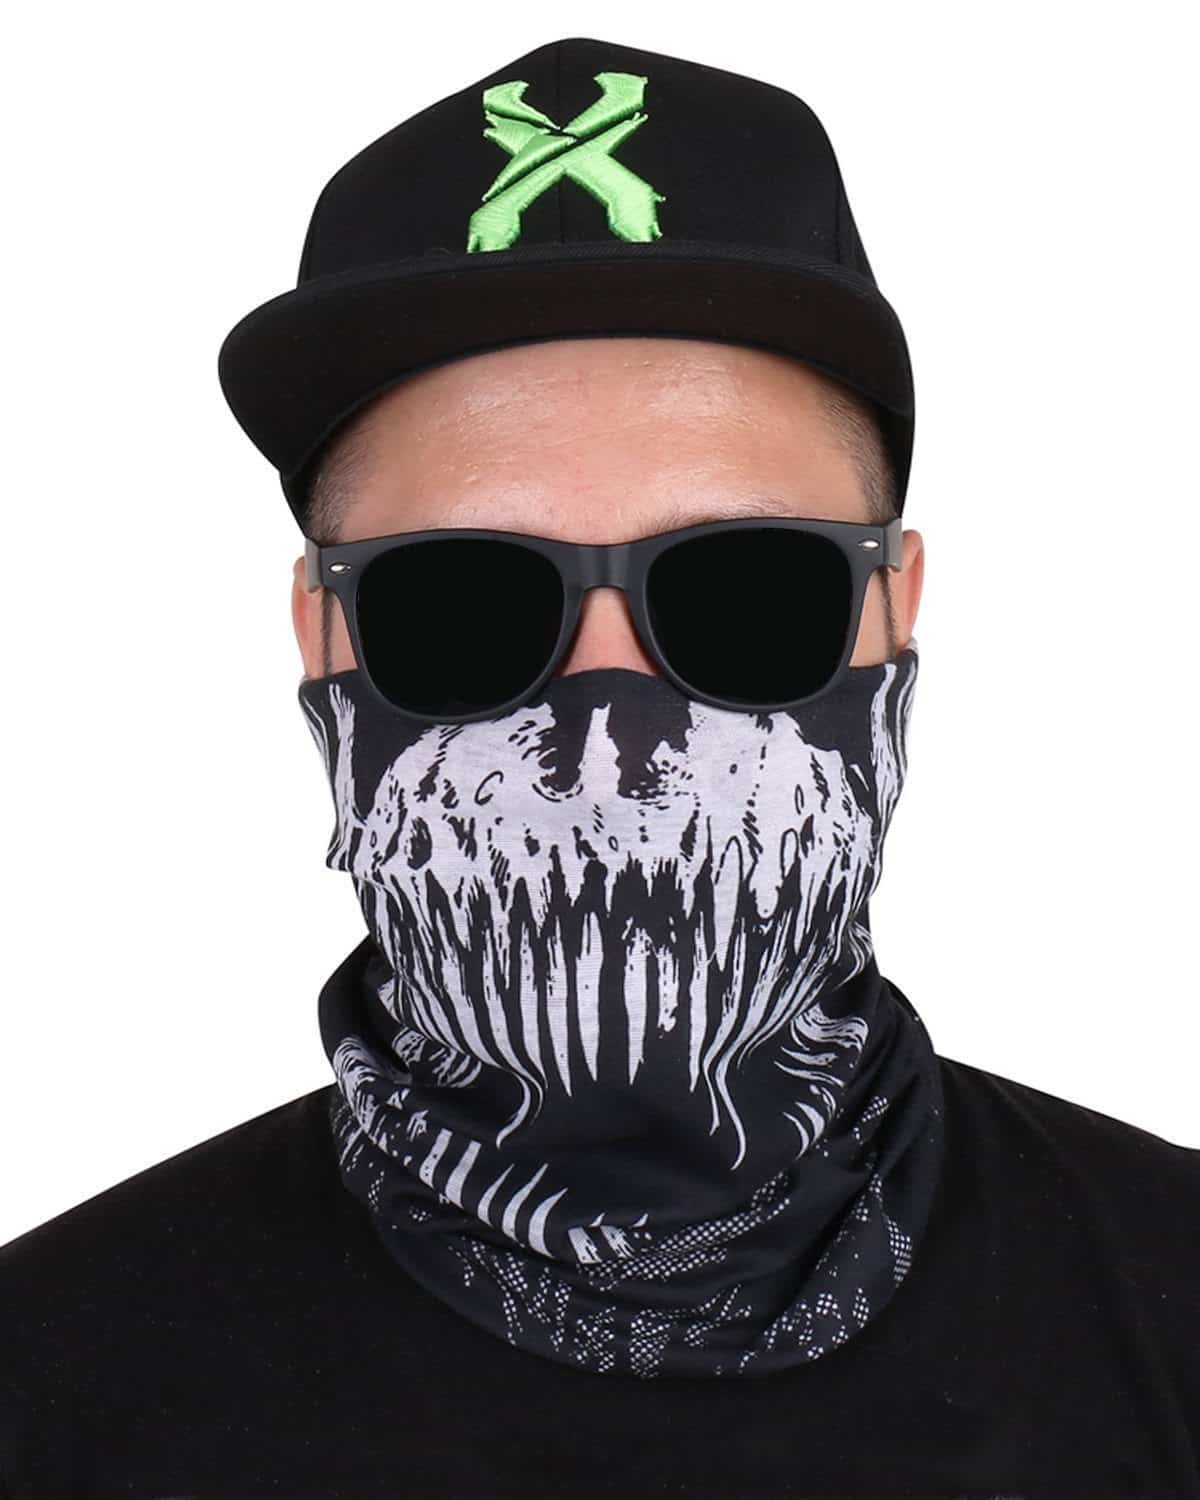 Excision Multi-Functional Face Mask